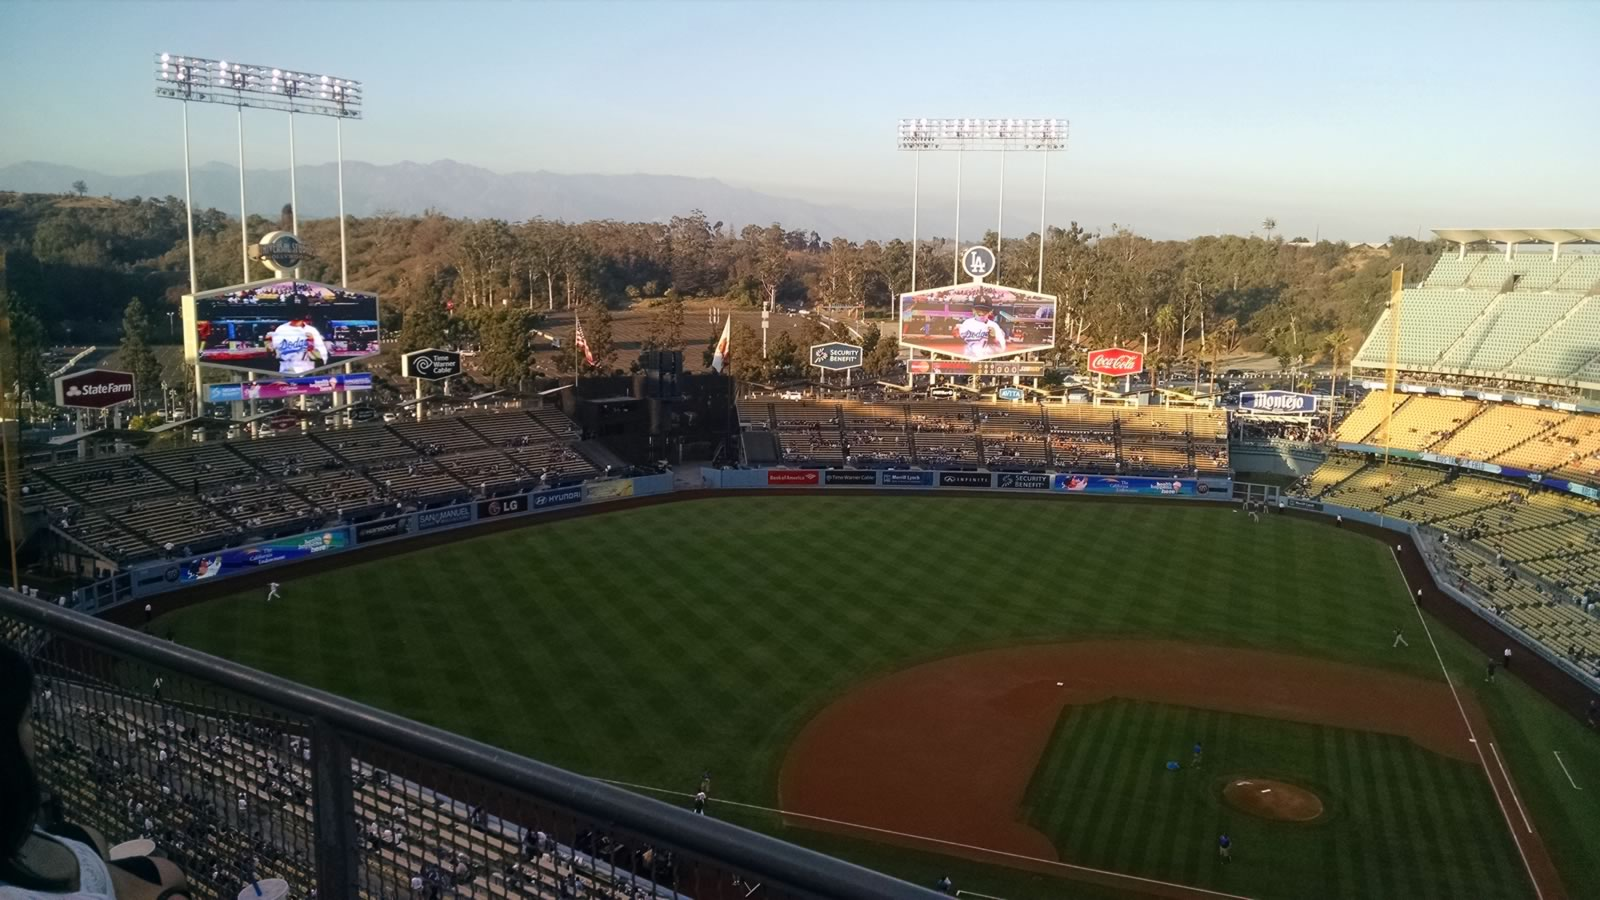 Seat View for Dodger Stadium Top Deck 13, Row B, Seat 13